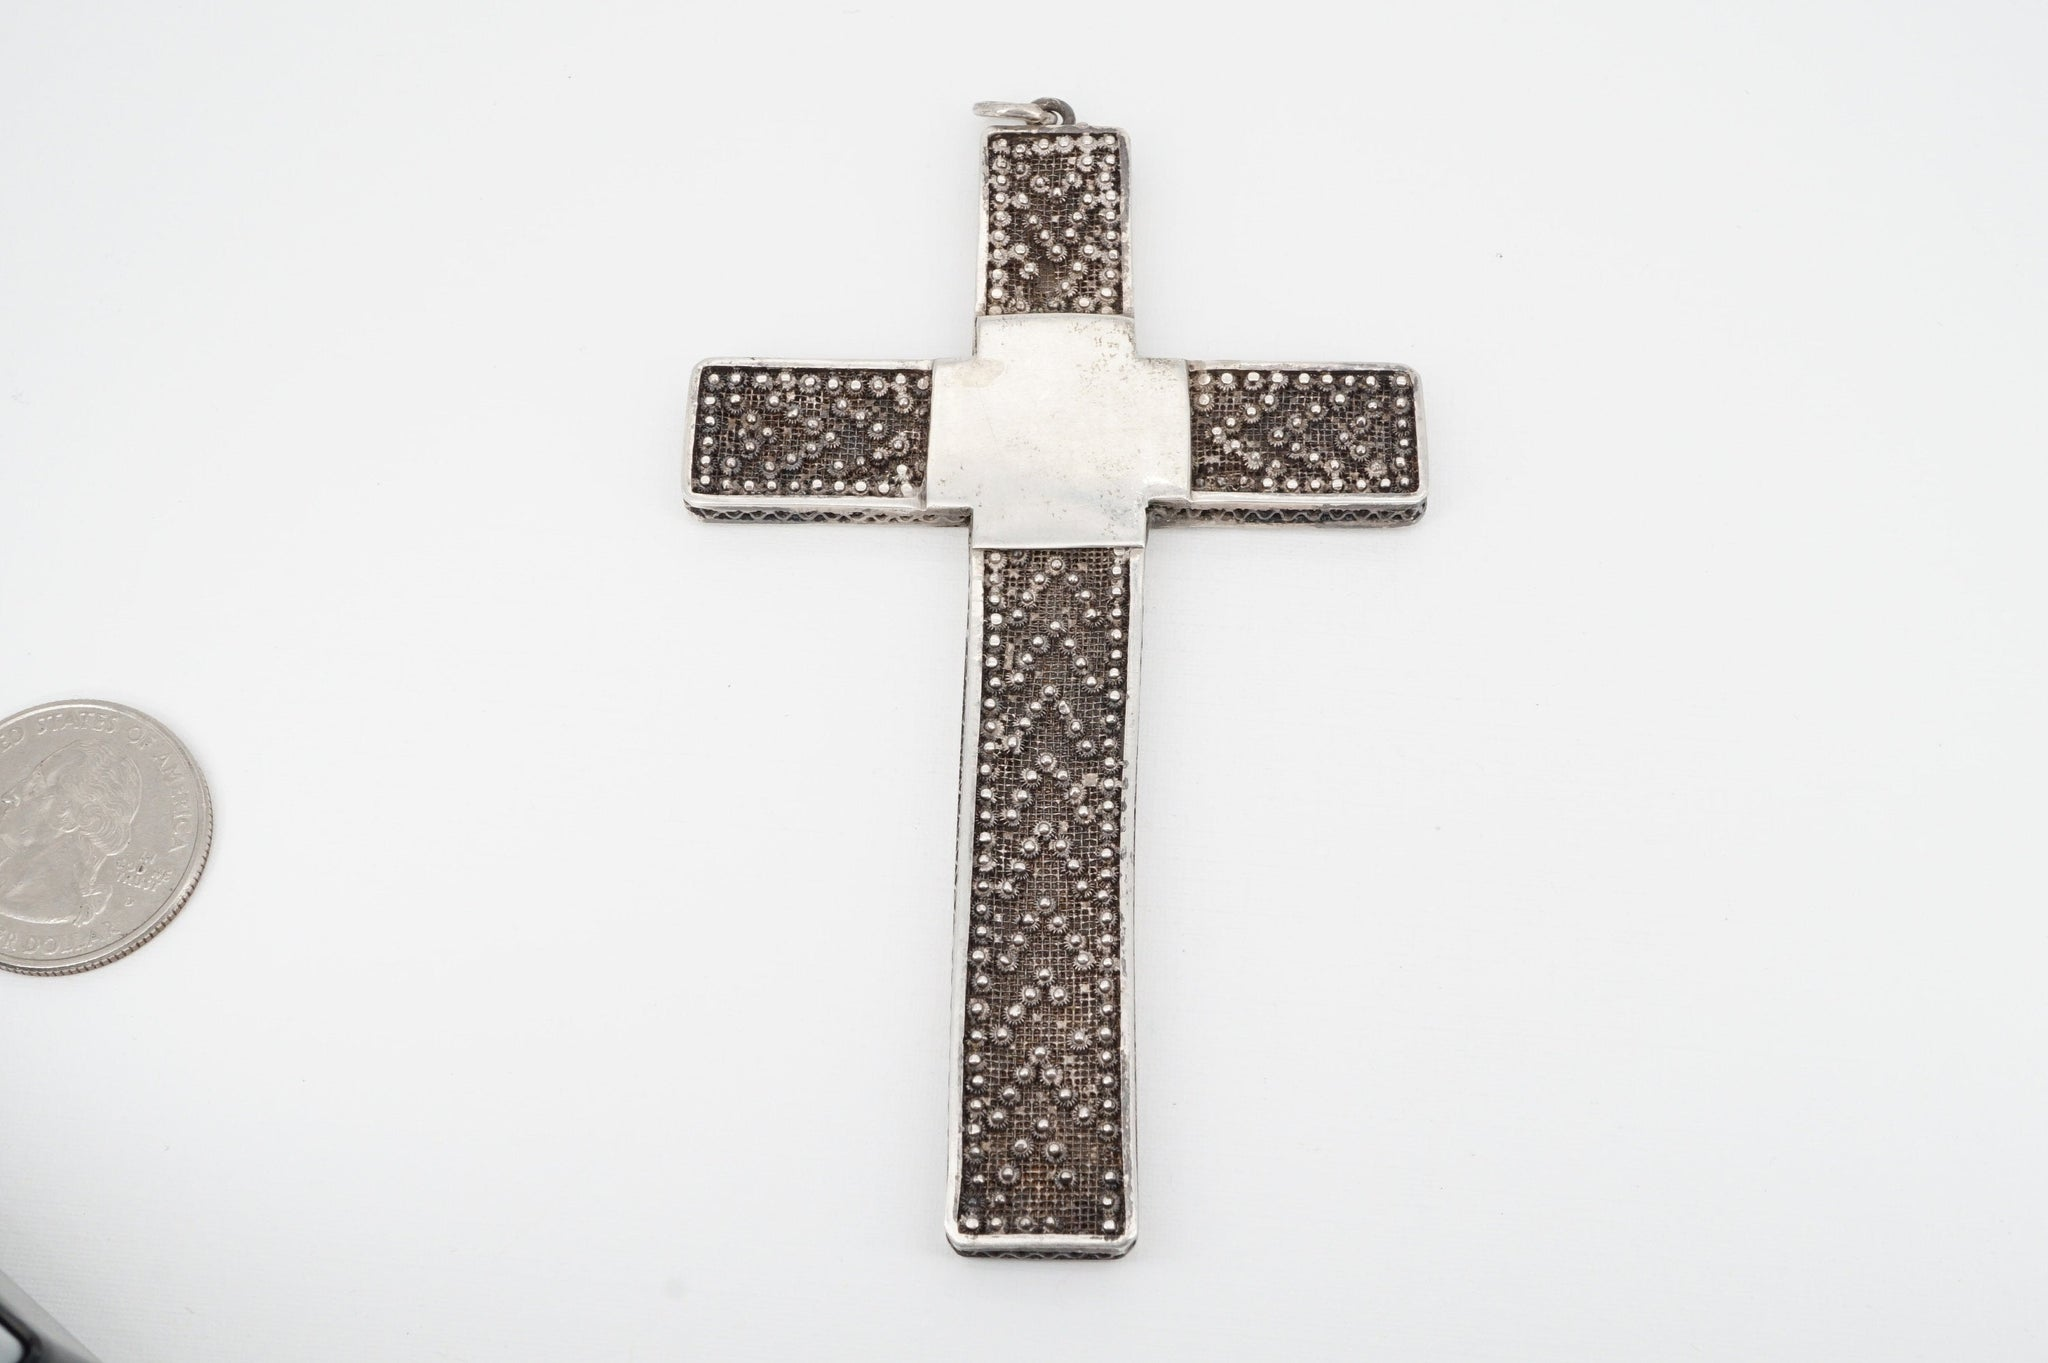 Huge Antique 3 Dimensional Filigree Sterling Cross Pendant